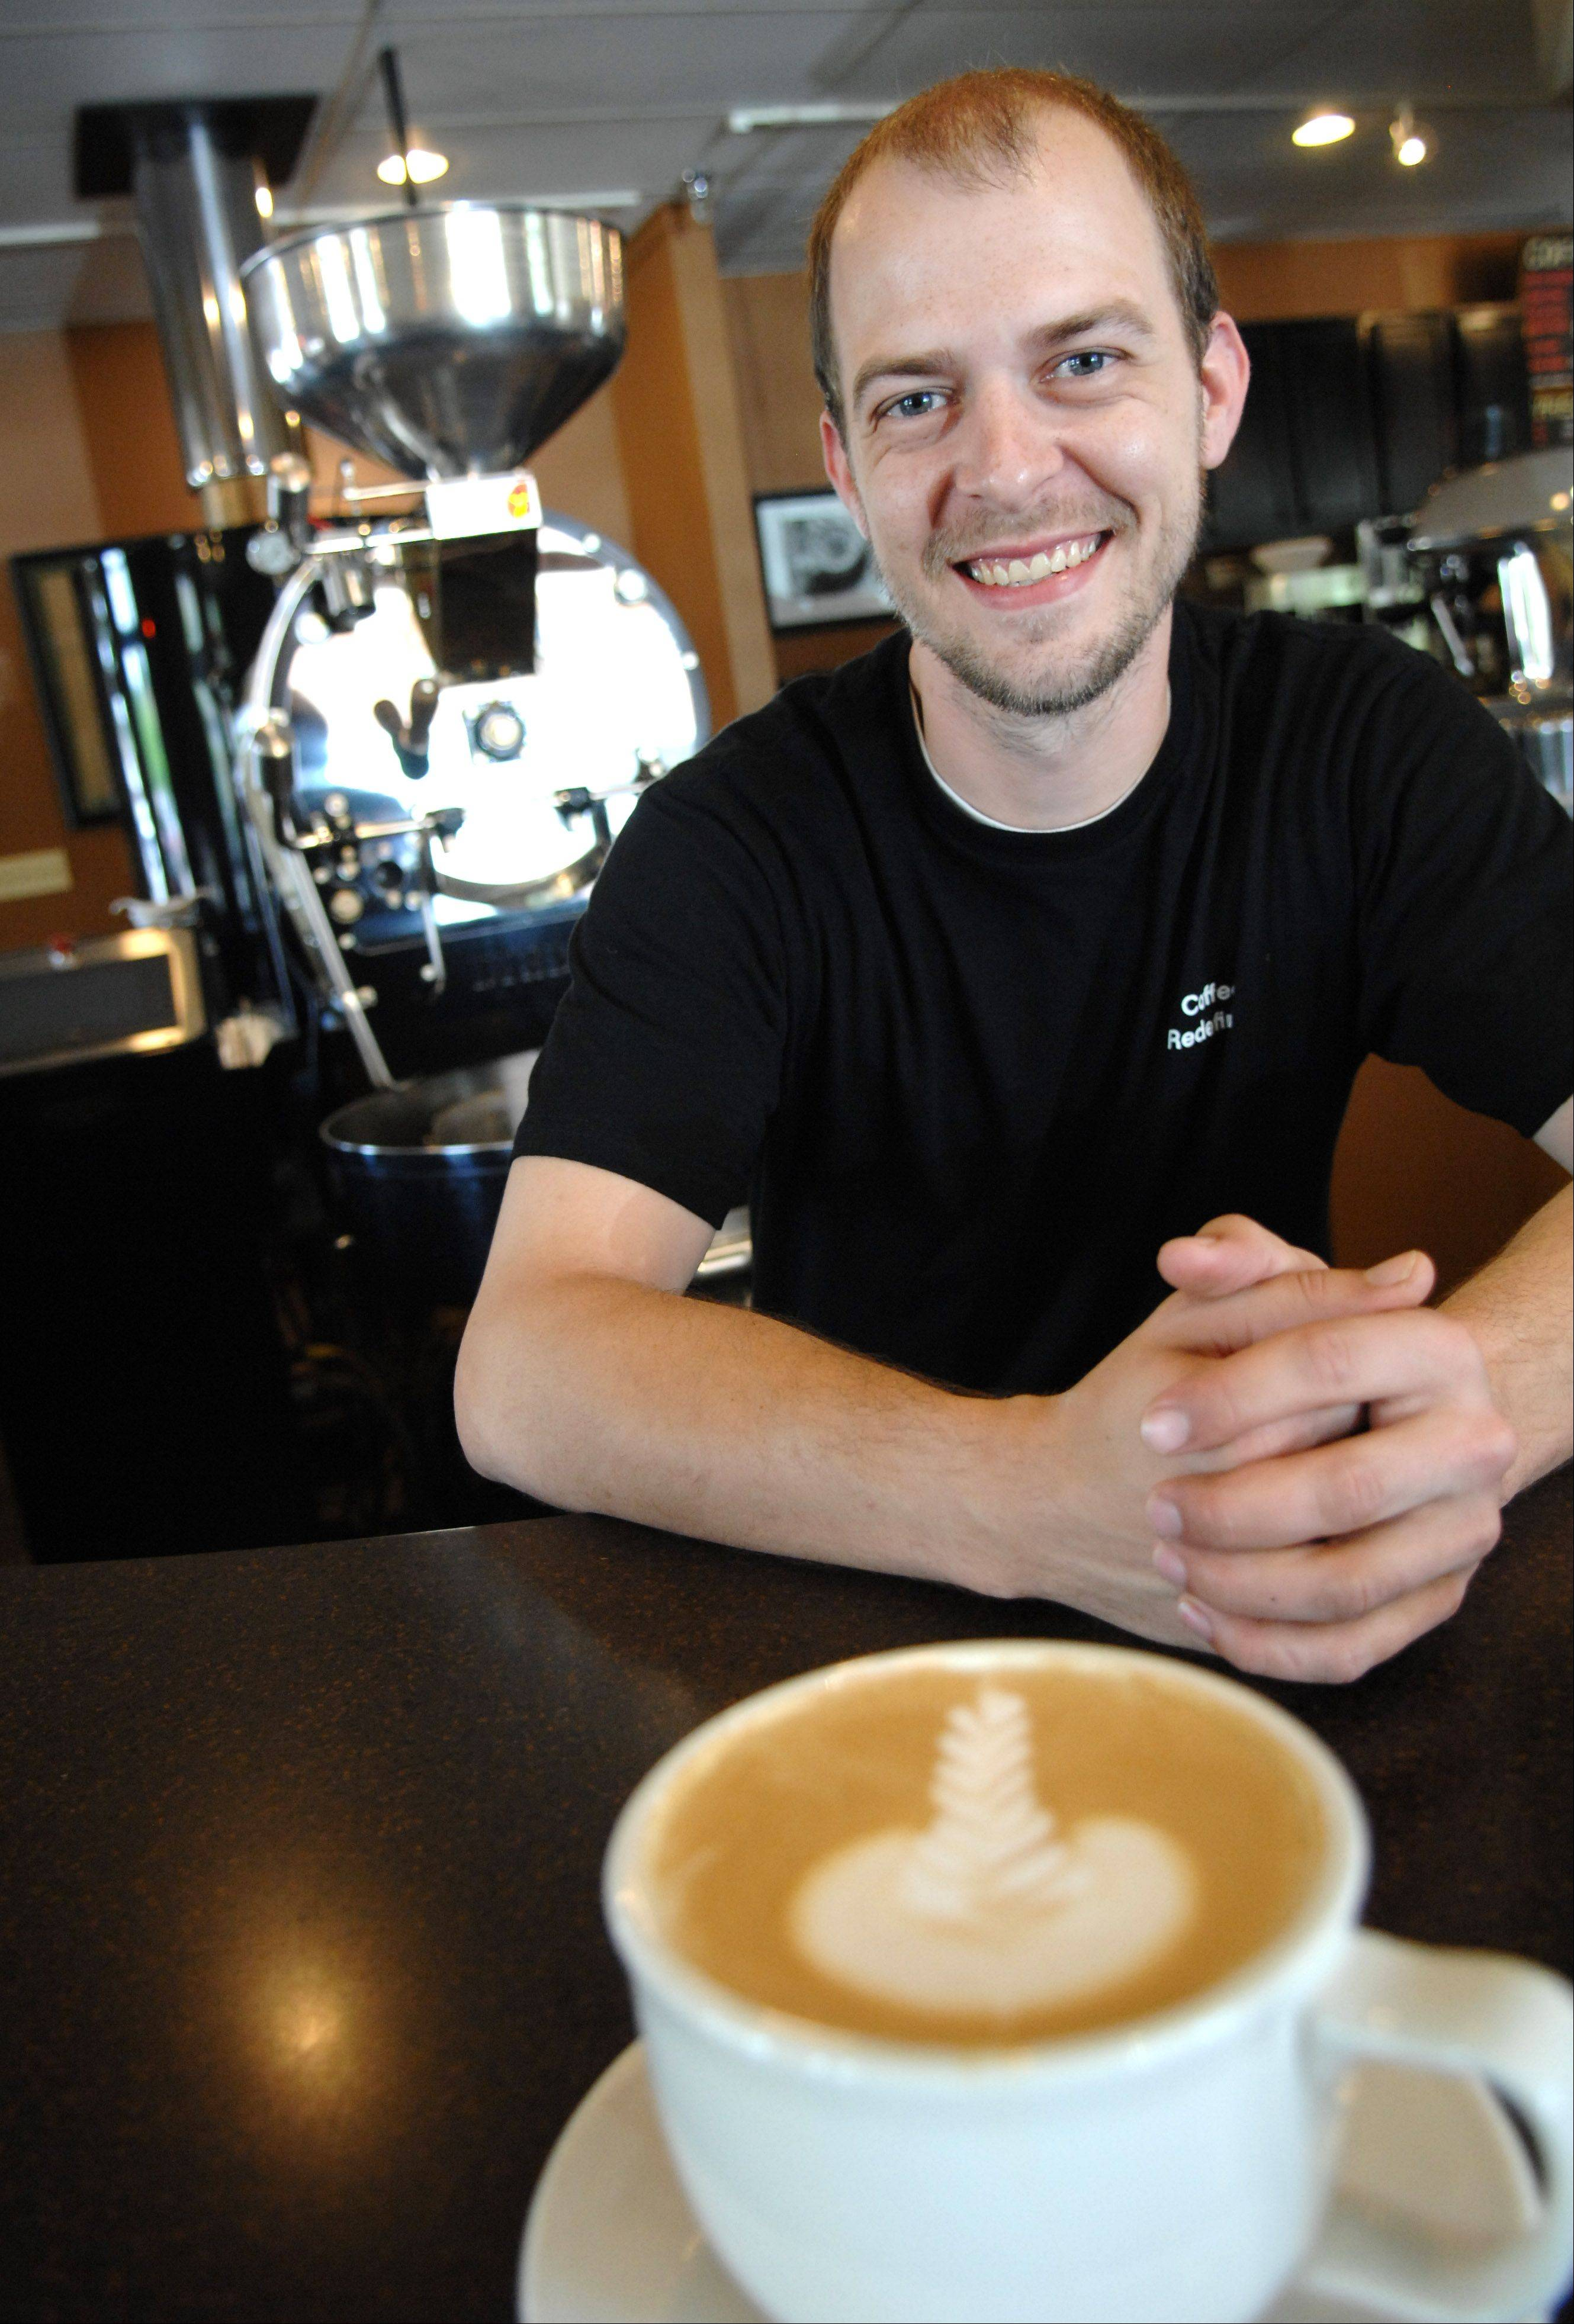 Barista Michael Burkholder of Arcedium Coffeehouse in St. Charles is proud of his coffeehouse's top eight finish in regional competition.